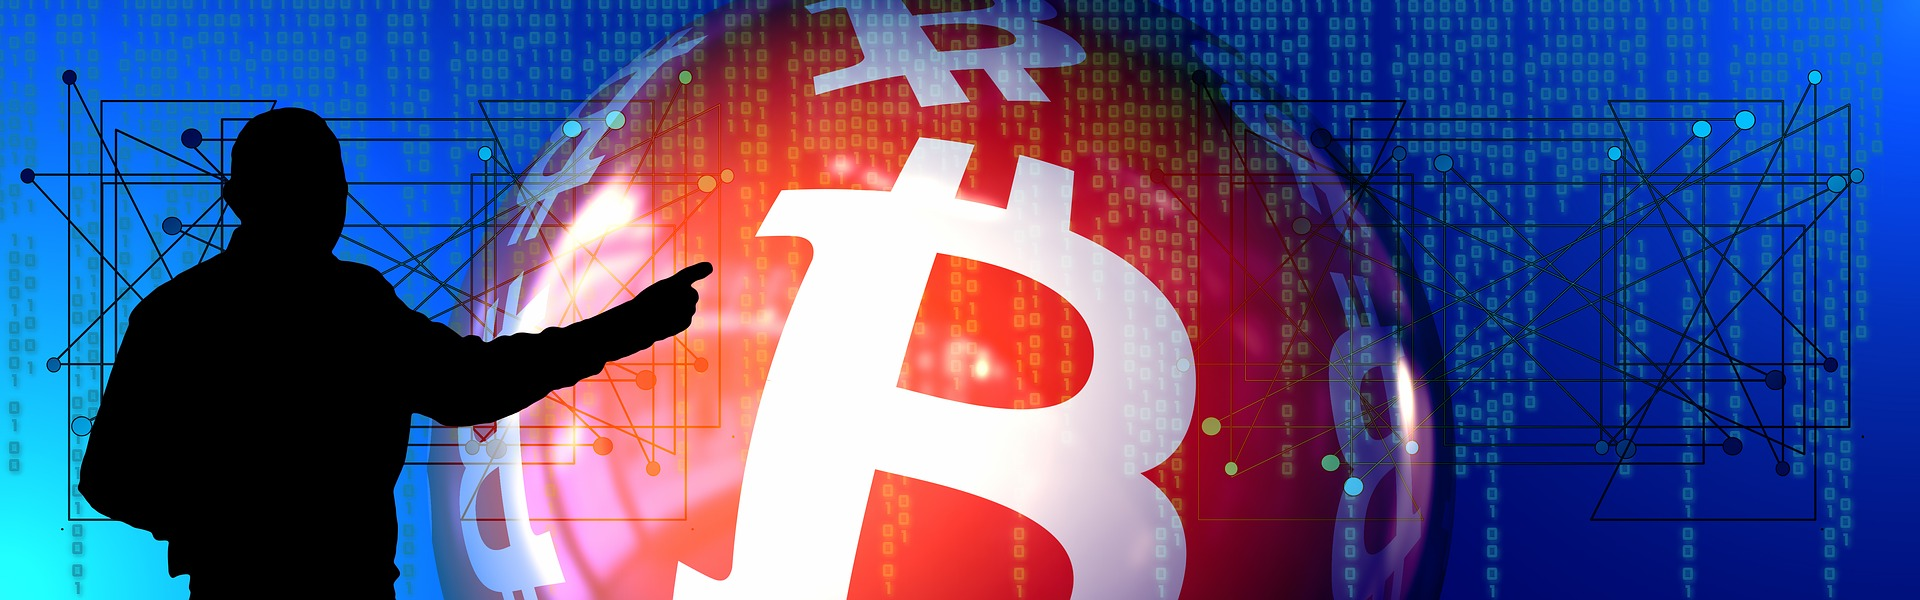 crypto-currency-1823349_1920